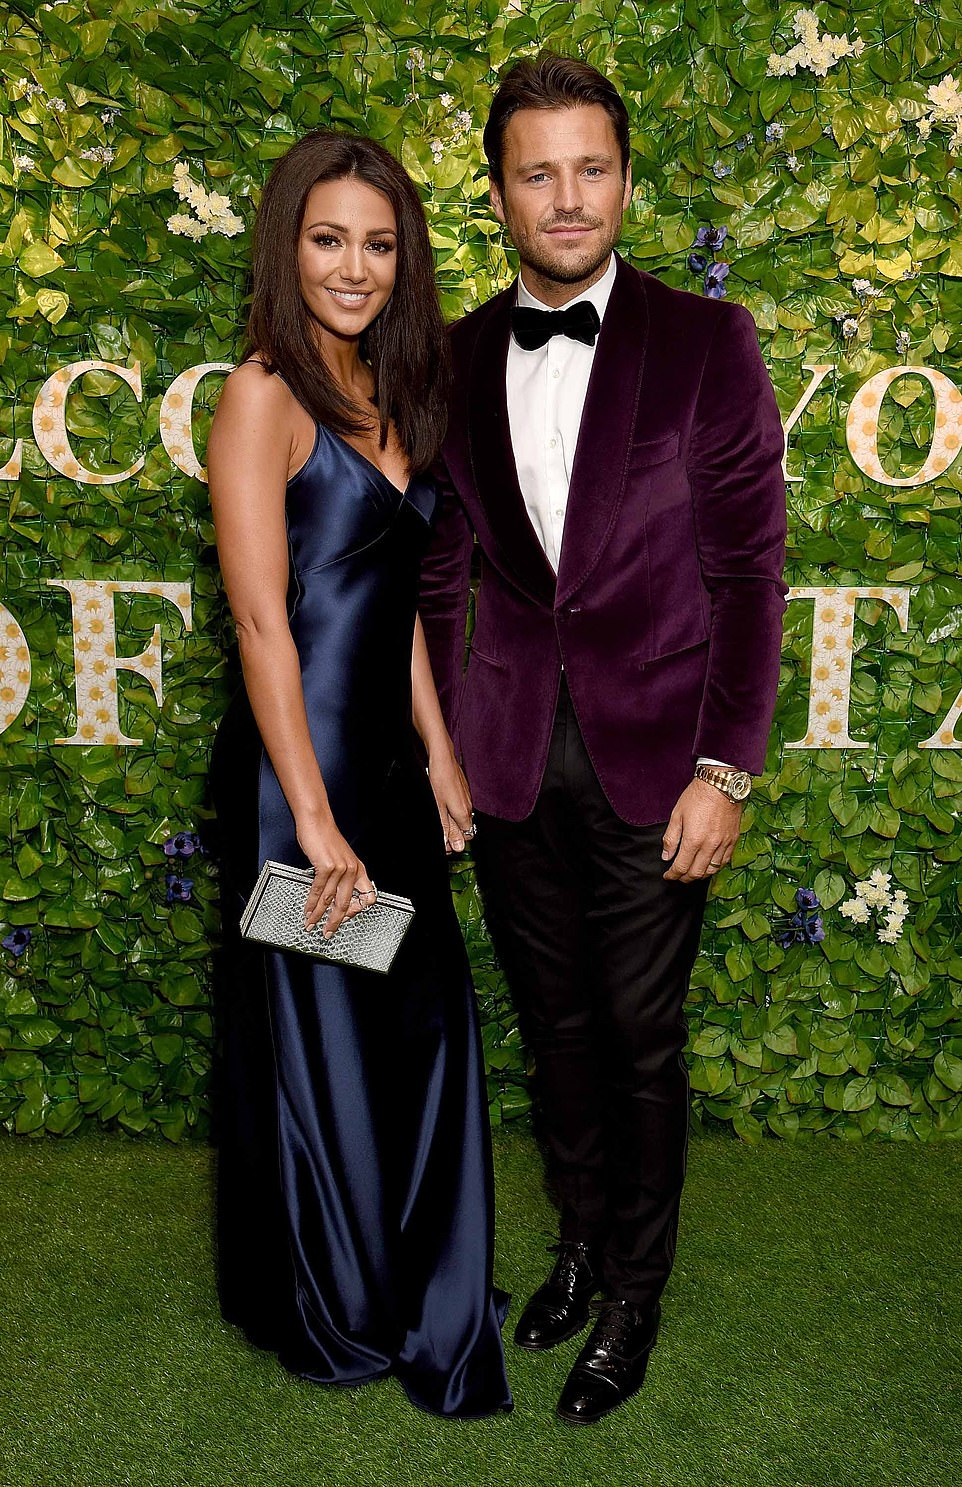 EXCLUSIVE: Two local councils have criticized Mark Wright and Michelle Keegan's plans to turn their dream family into a castle.